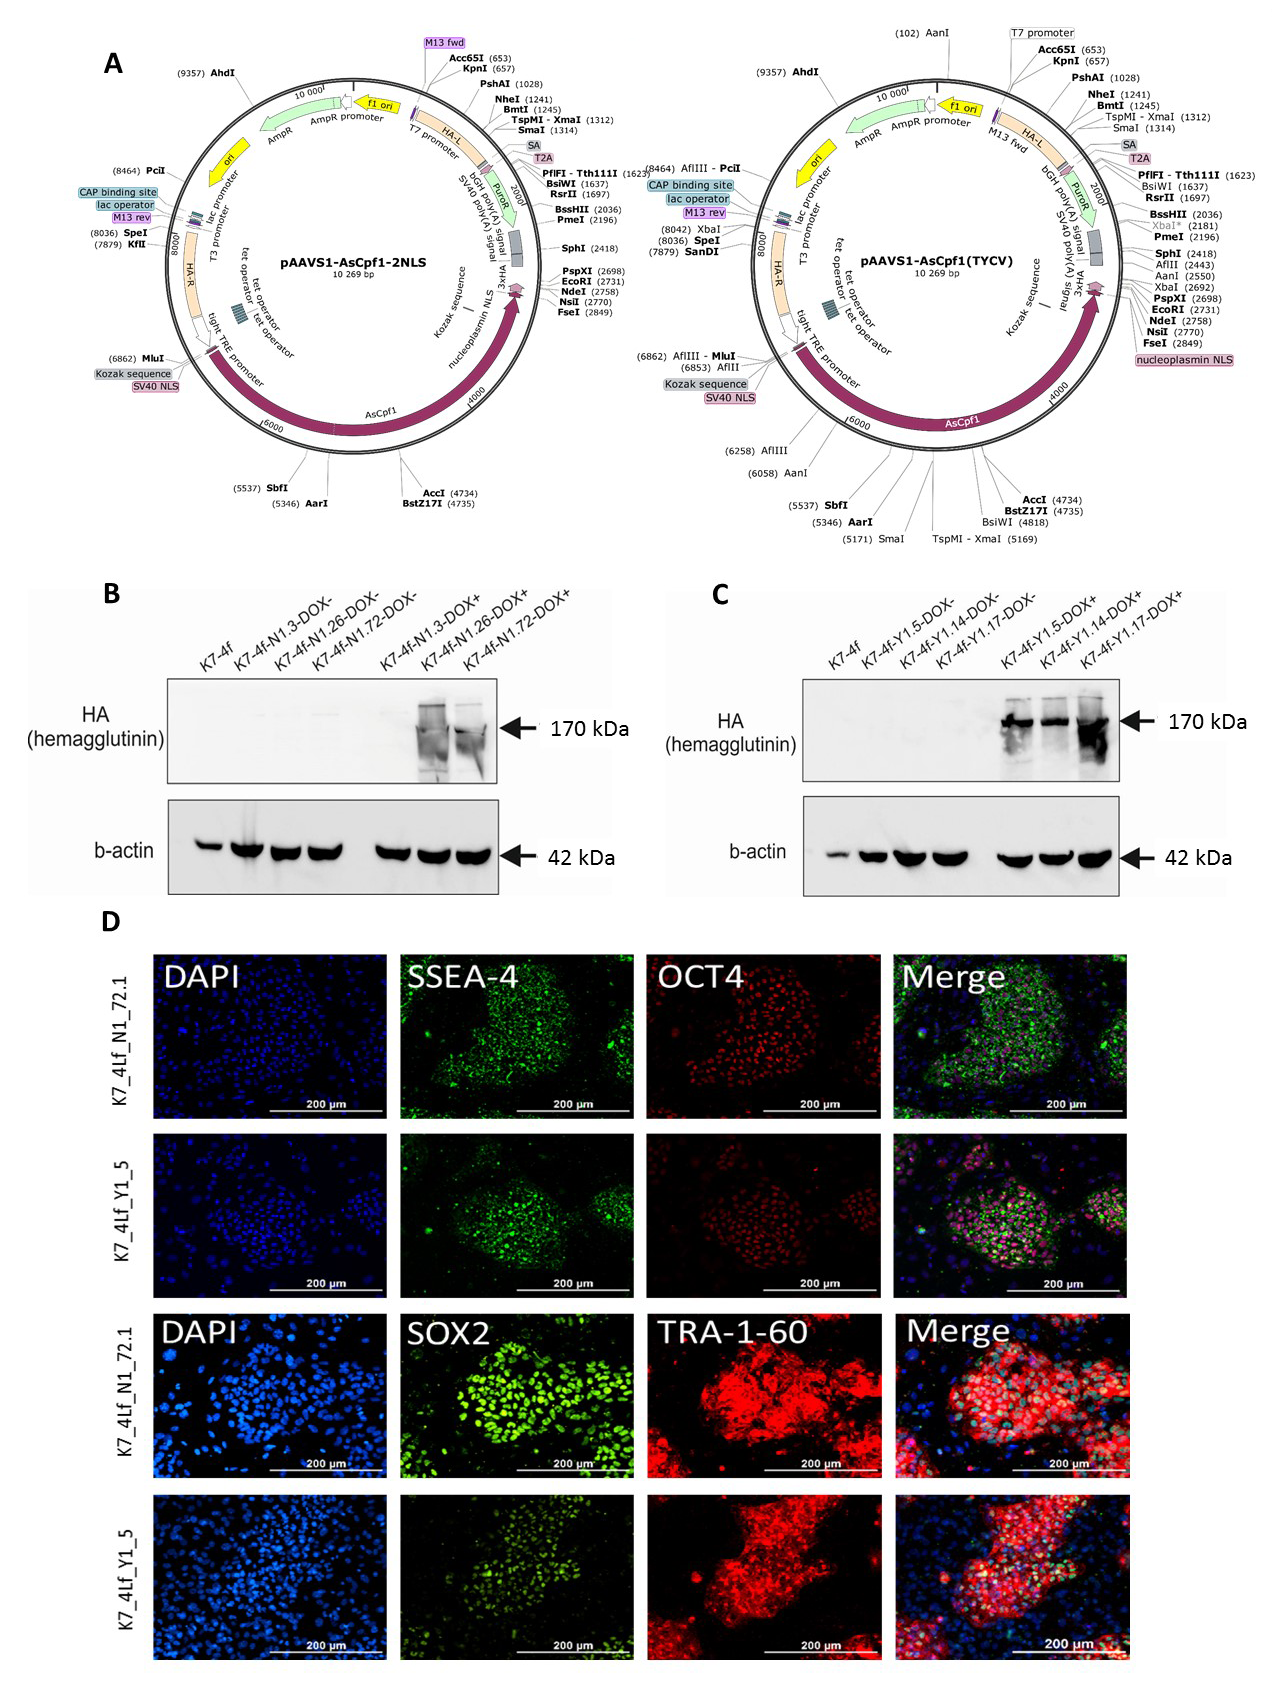 Transgenic iPSC lines - Programmable nucleases